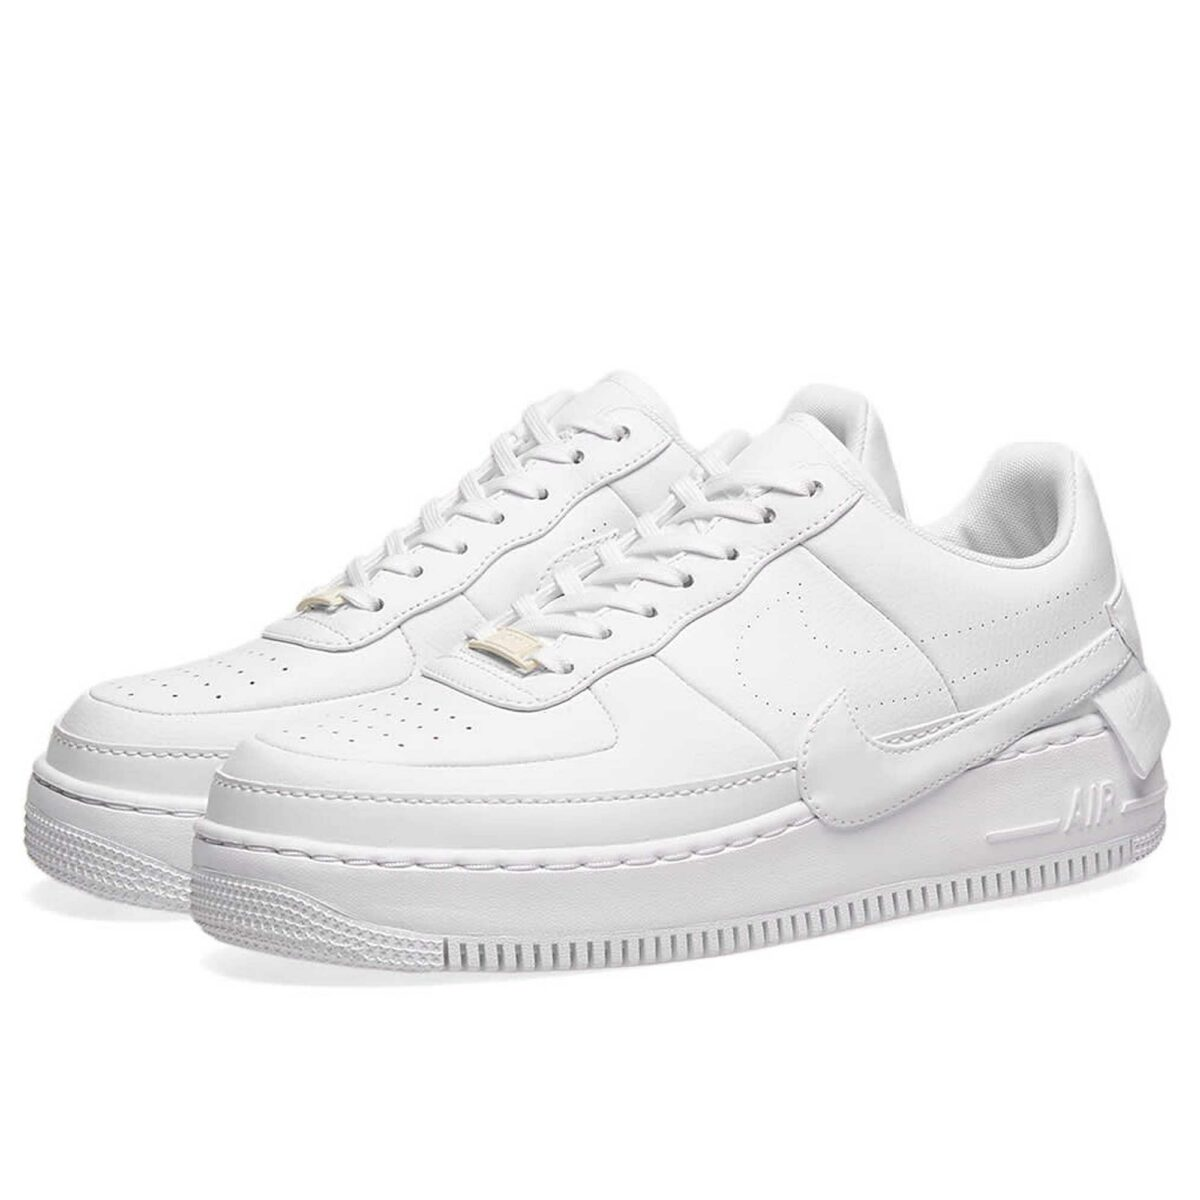 nike air force 1 jesterxxw white ao1220_101 купить